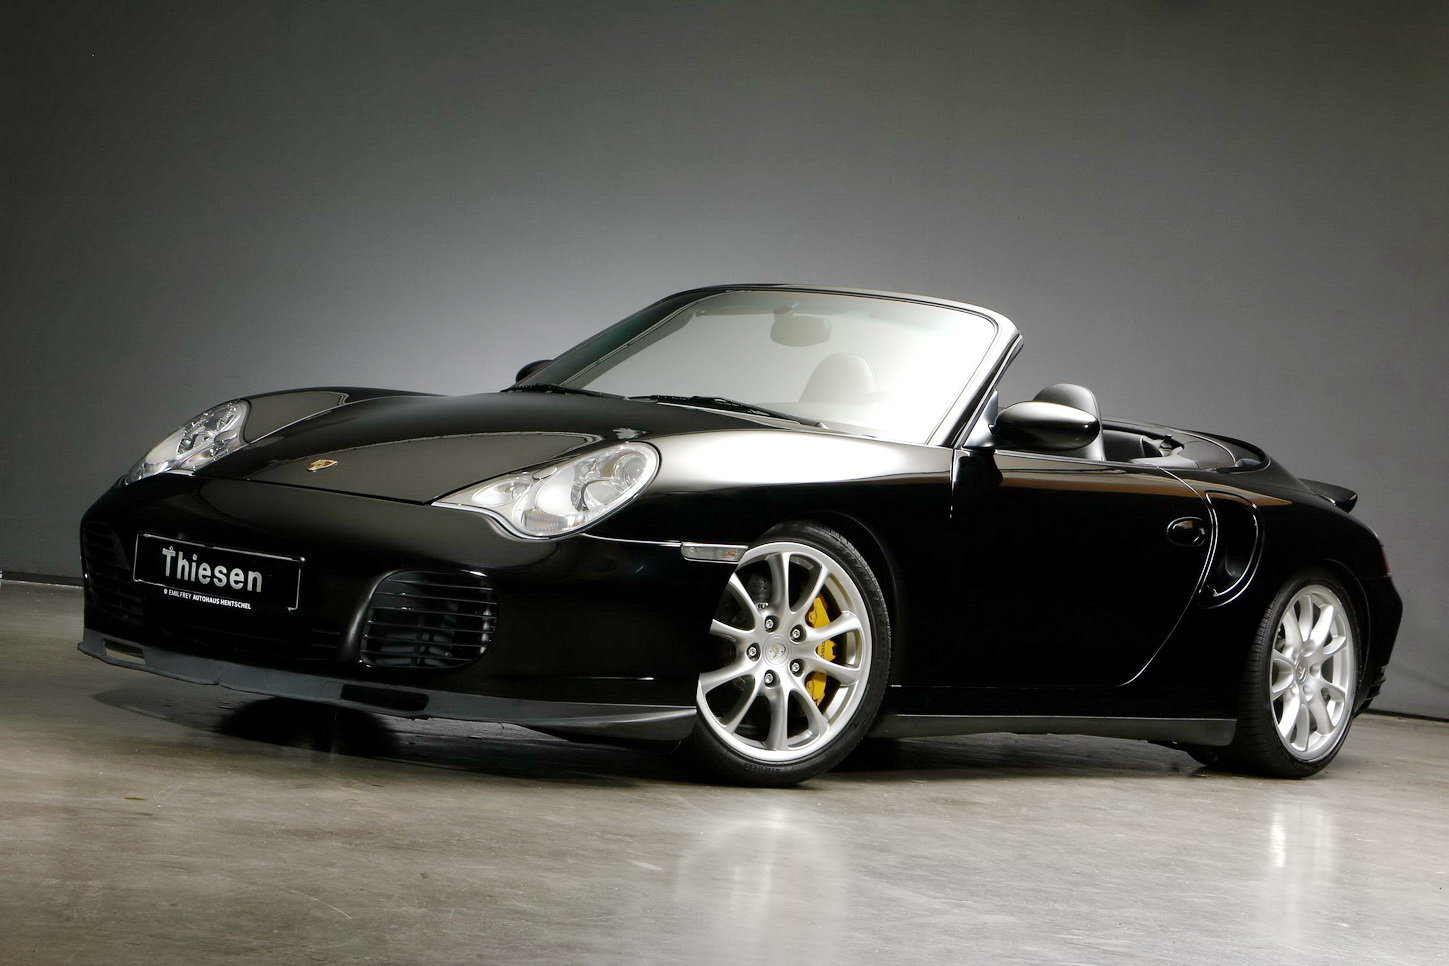 2005 Porsche 996 Turbo S Cabriolet For Sale (picture 1 of 6)